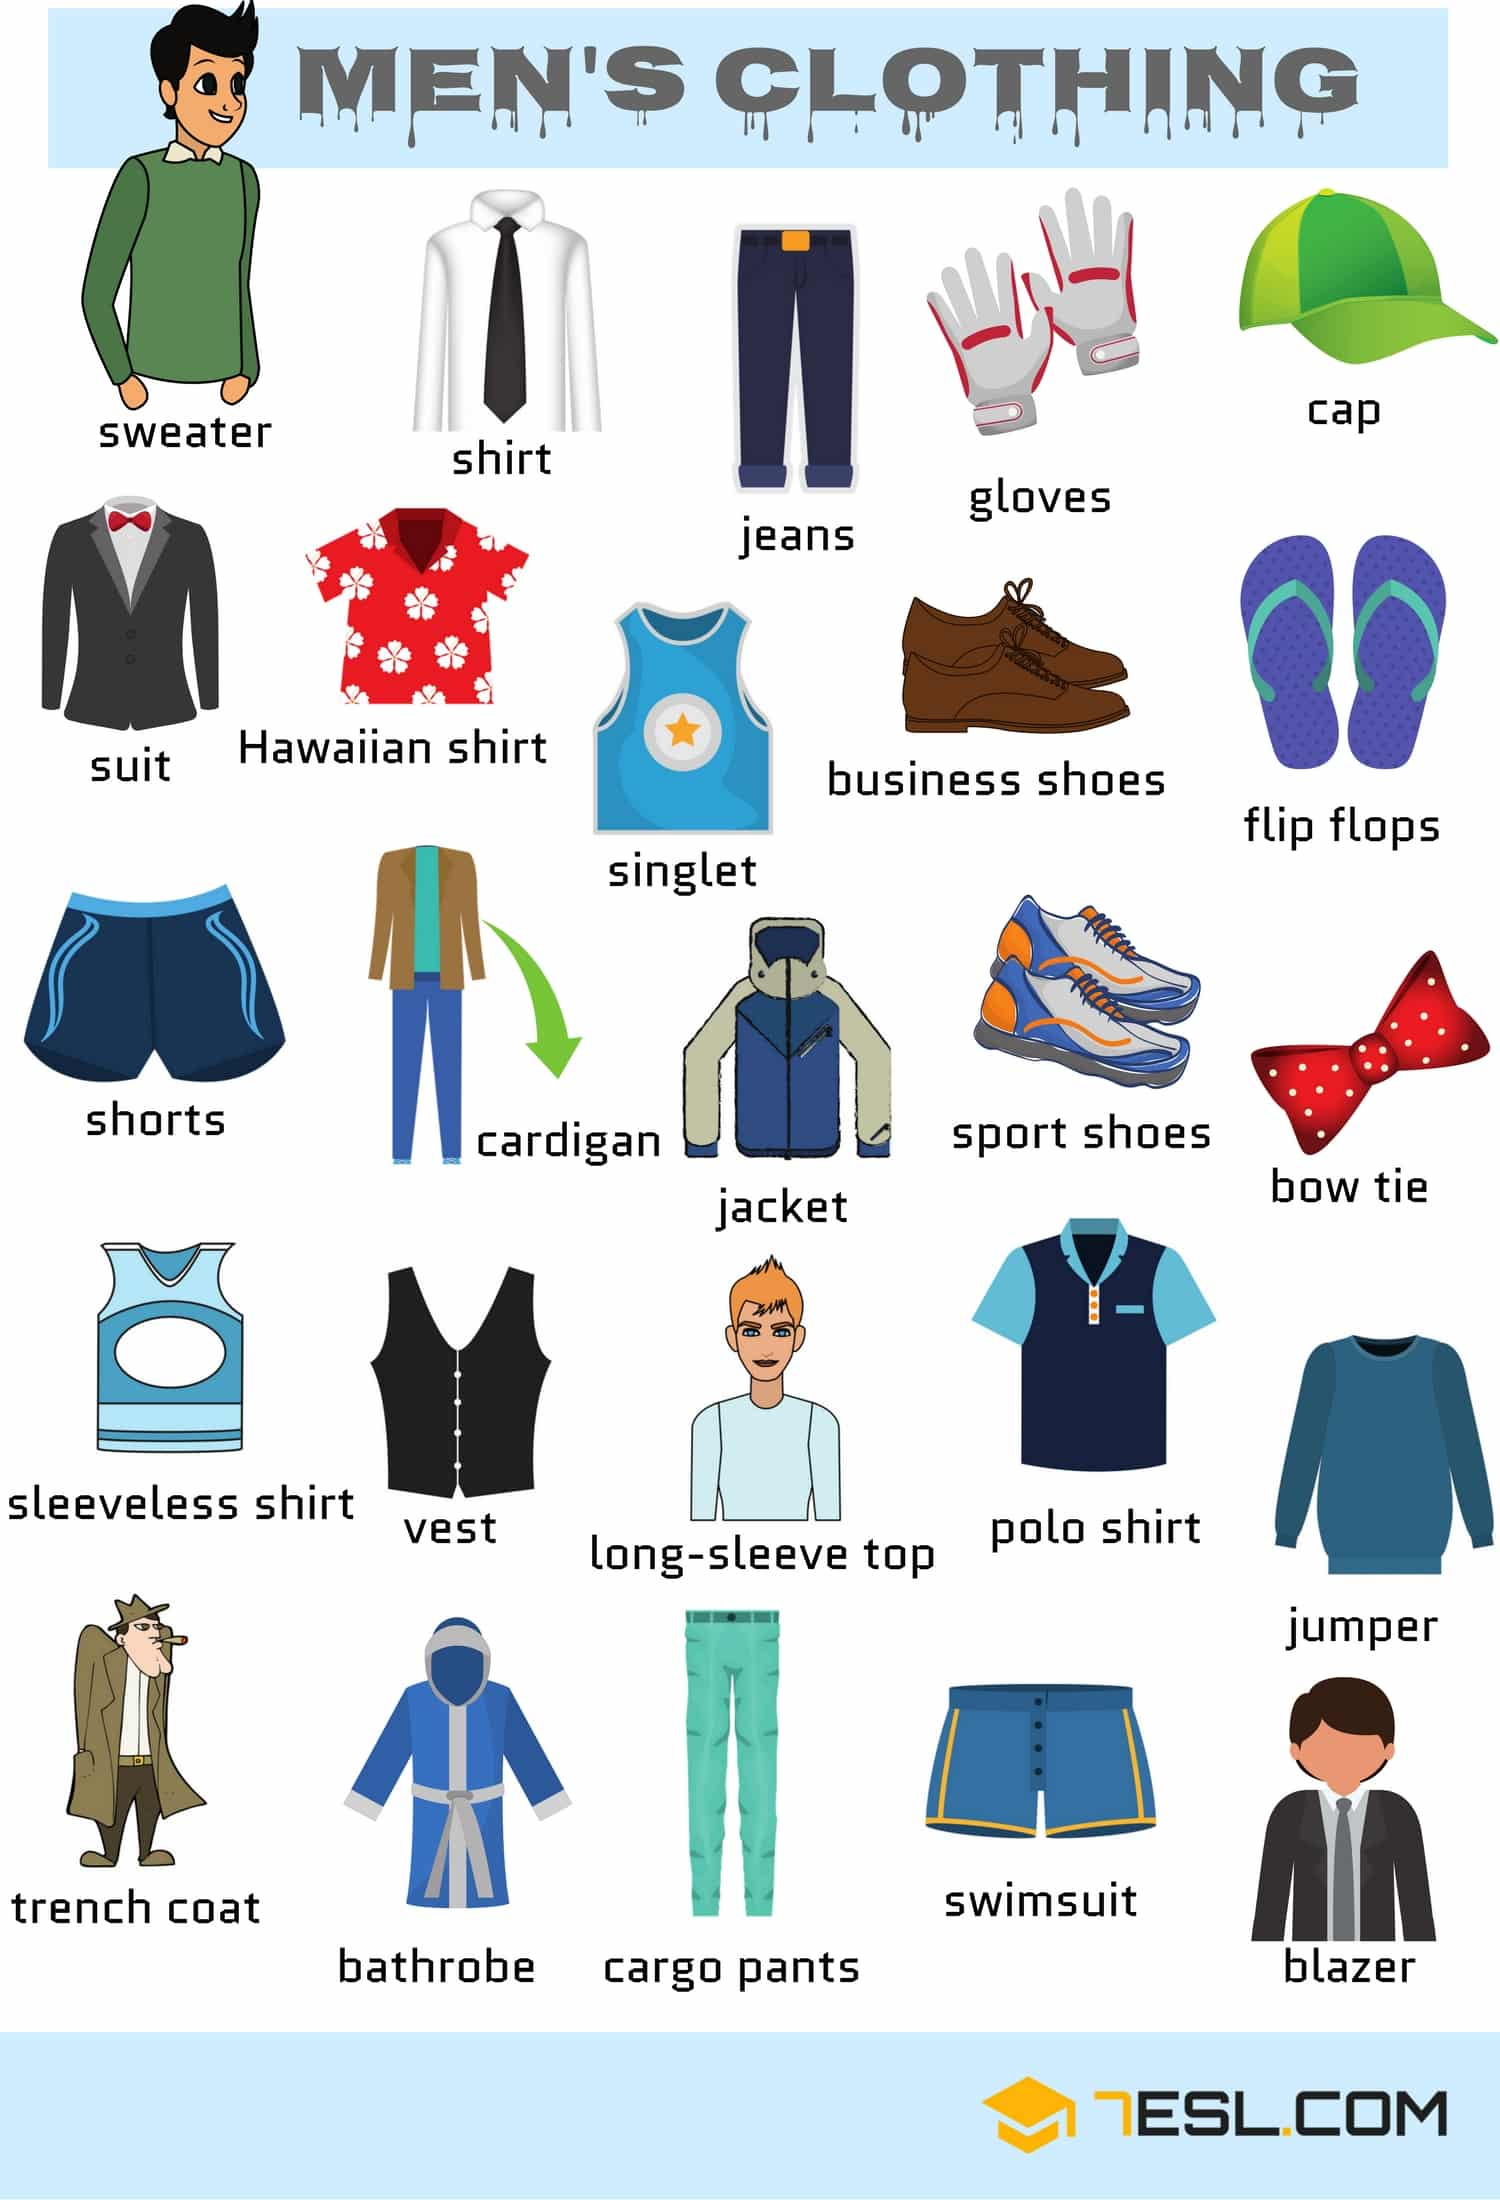 English Vocabulary Clothes Men S Clothing Vocabulary In